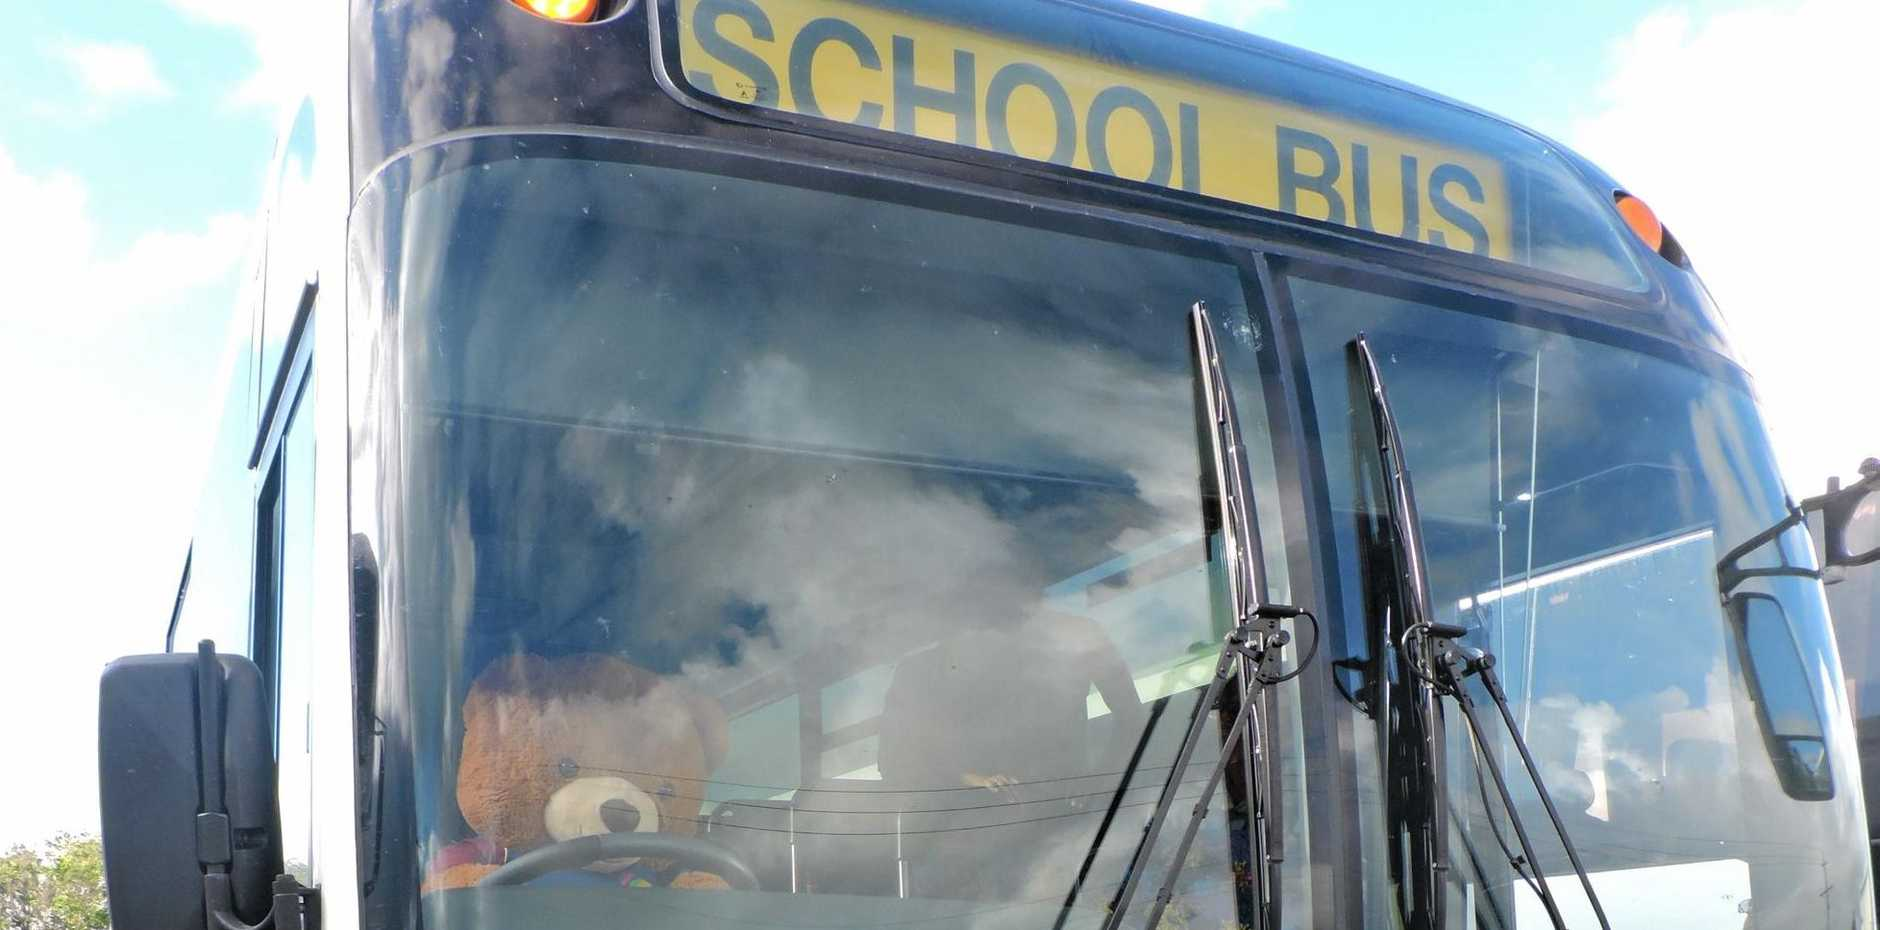 Adults can take the school bus too.